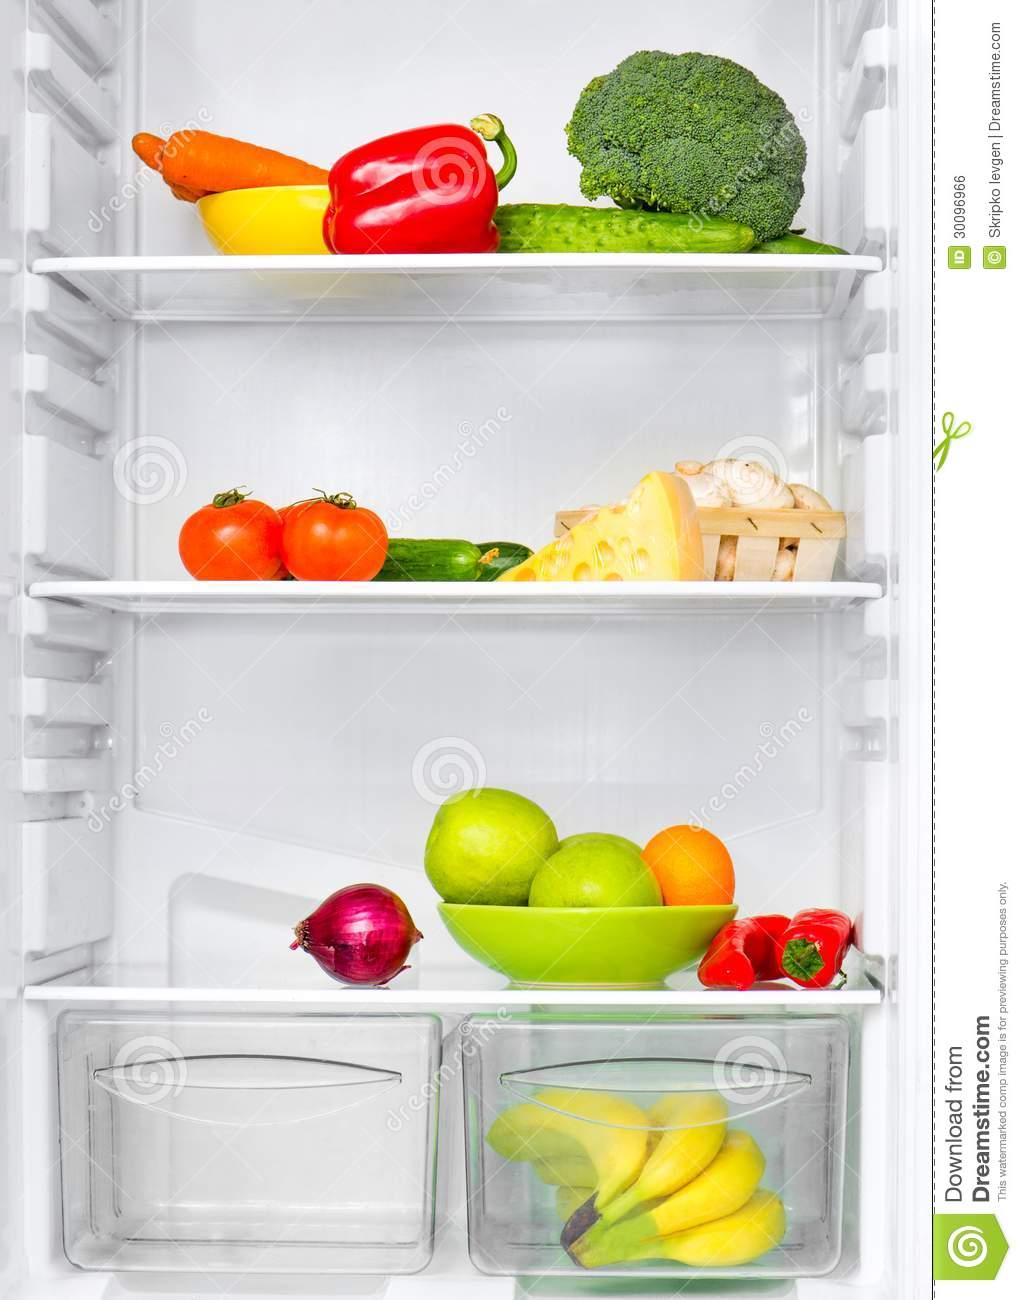 Background Of Refrigerator Full Of Fruits And Vegetables